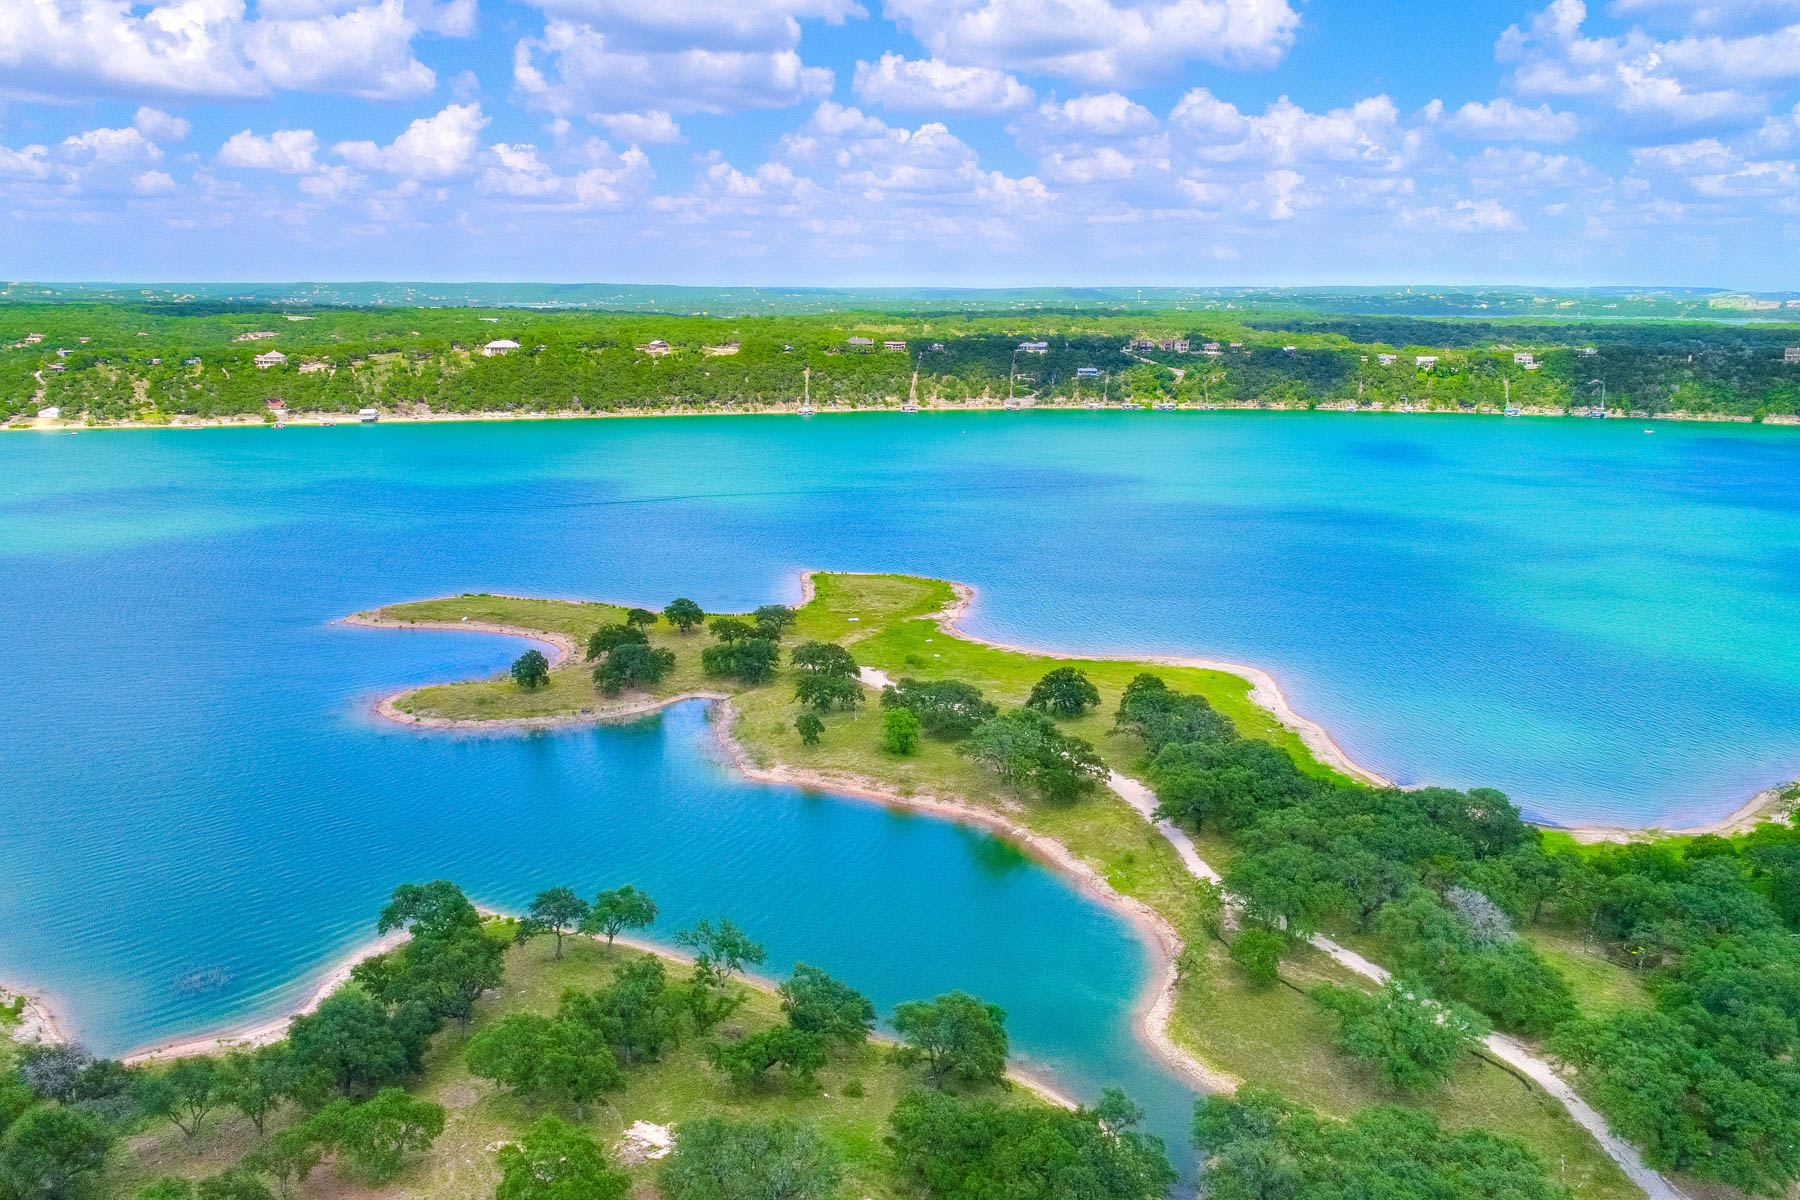 Land for Sale at The Reserve on Lake Travis: 18 Waterfront Acres 2200/08 Cypress Club Pointe Spicewood, Texas 78669 United States